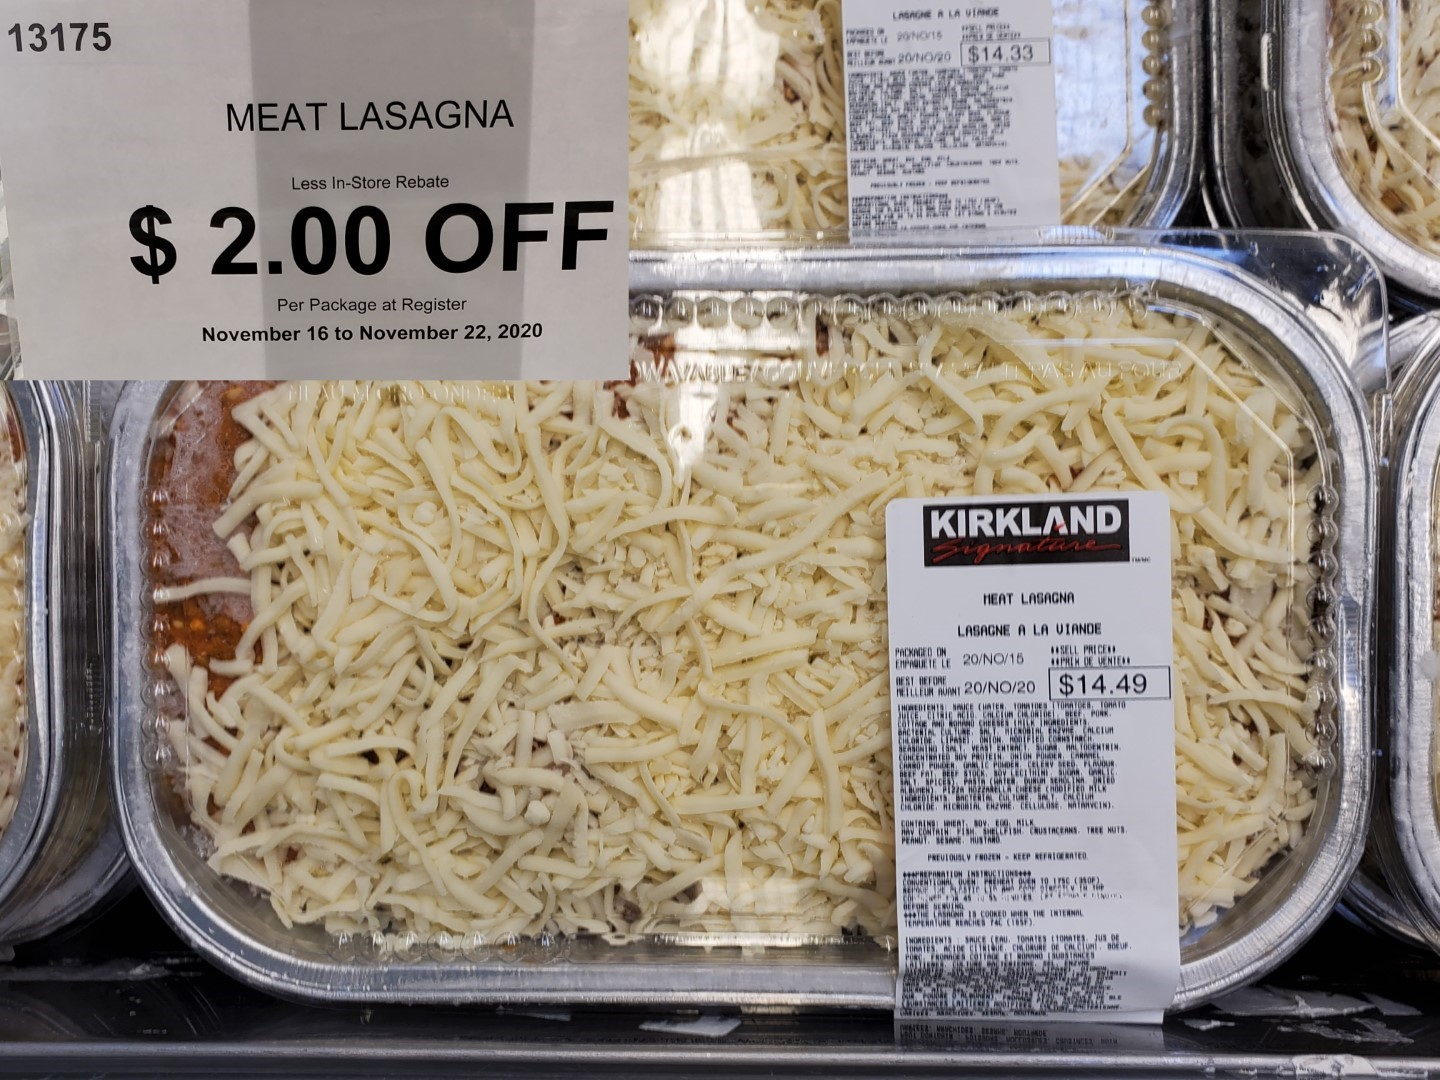 Costco meat lasagna